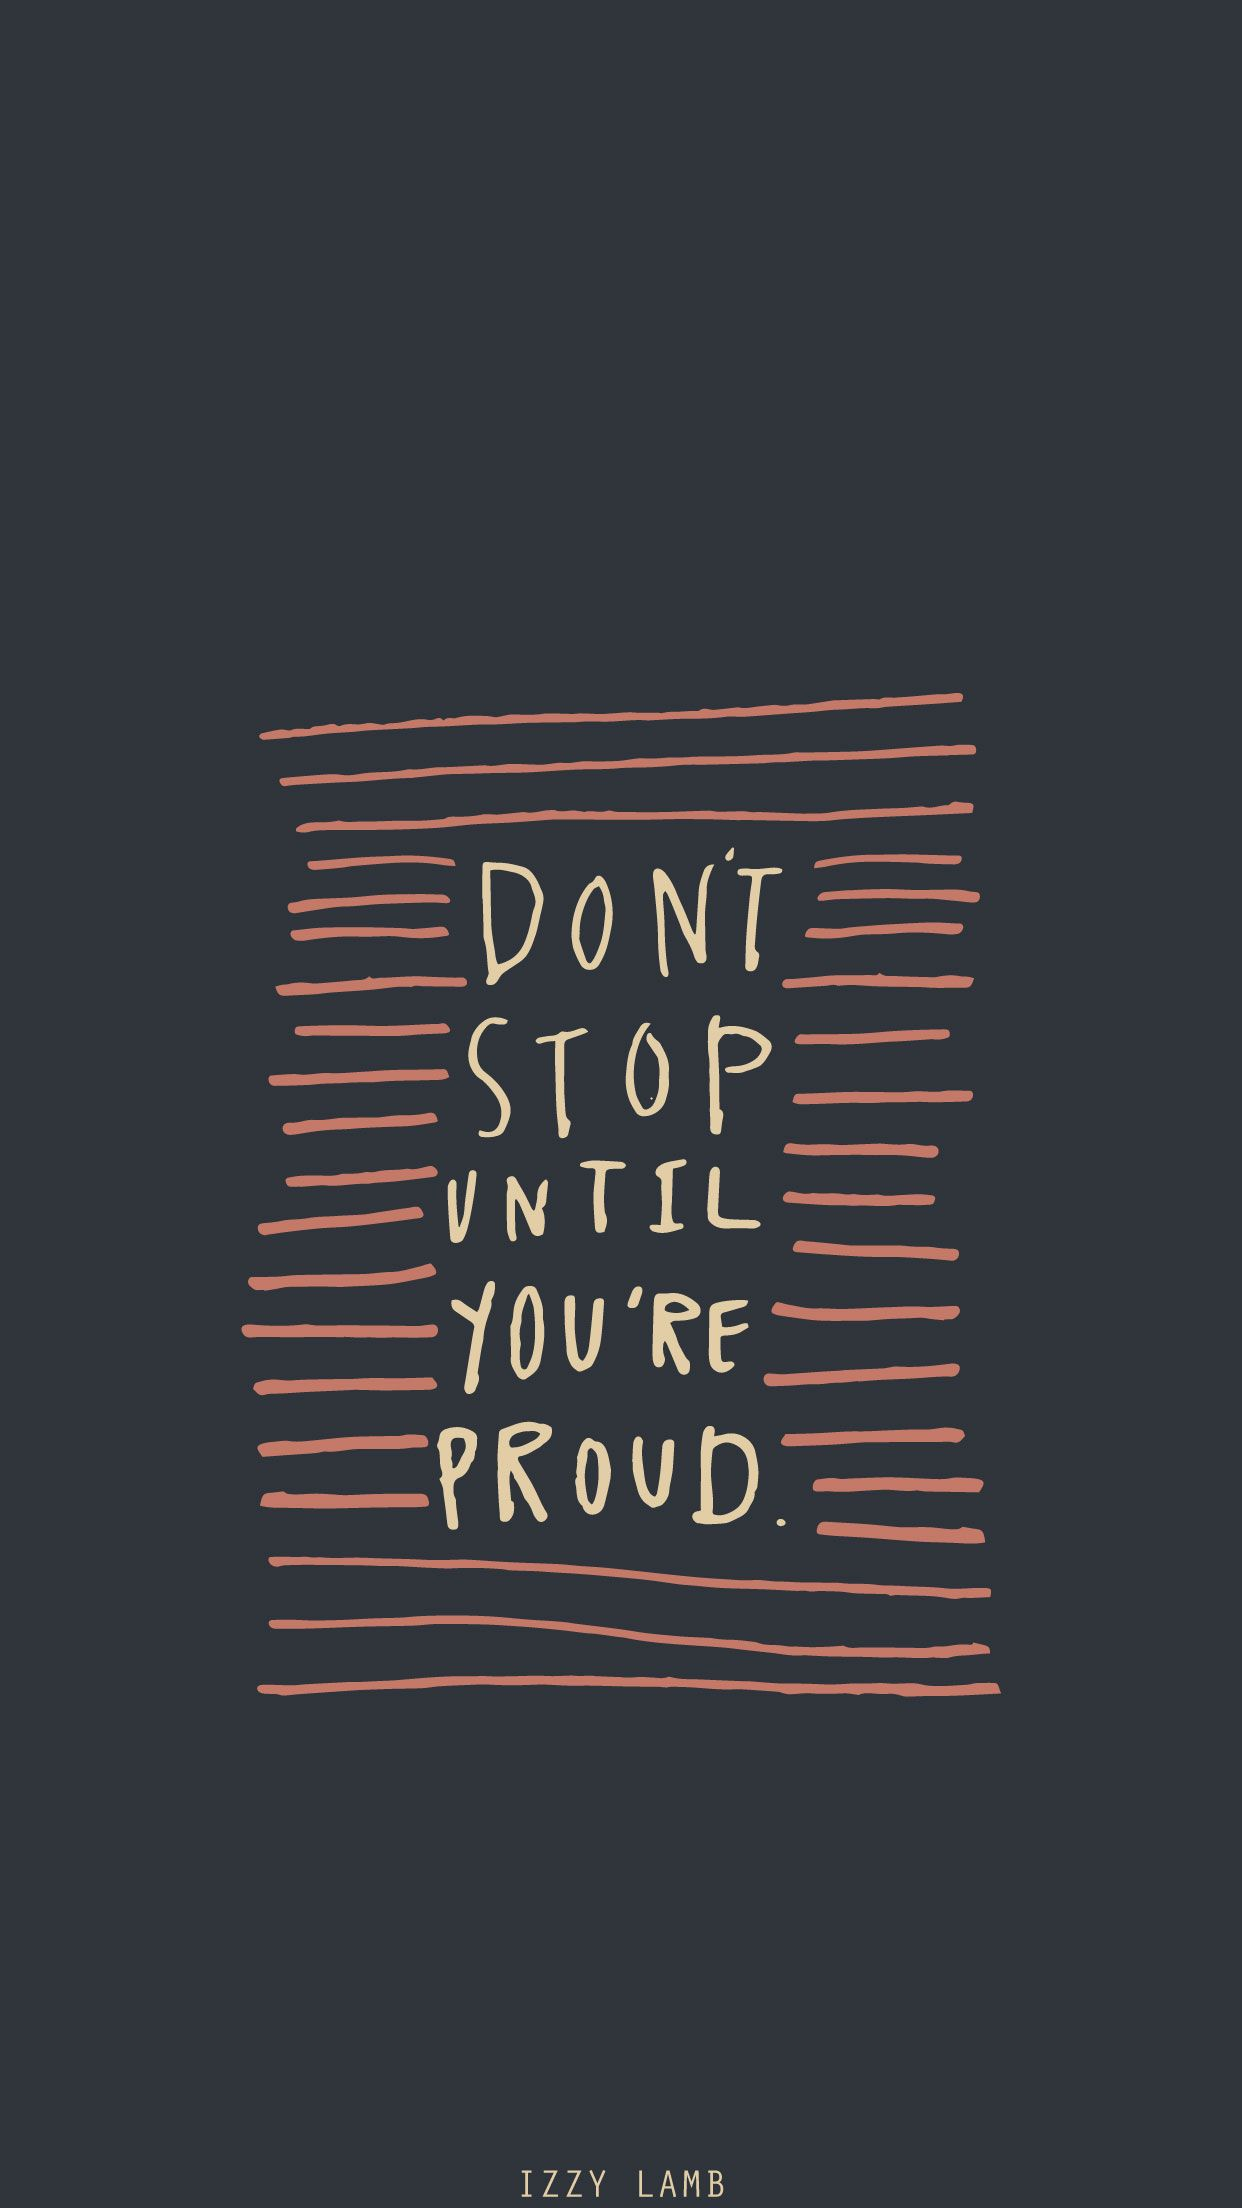 Inspirational Quotes Wallpaper Don't Stop Until You're Proud wallpaper #iphone #wallpaper  Inspirational Quotes Wallpaper